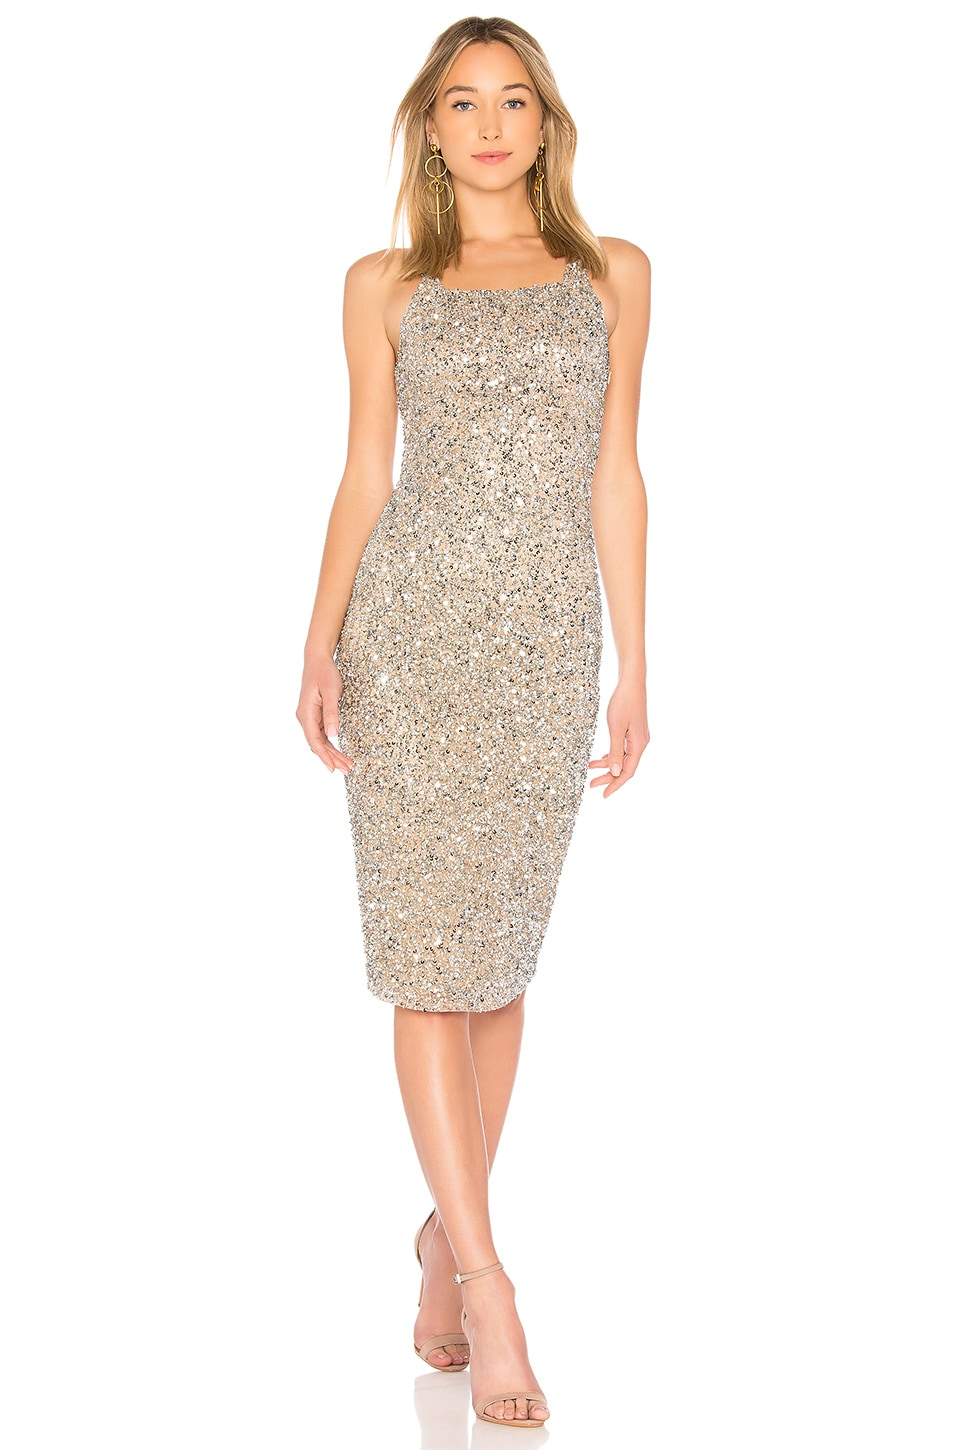 Parker Black Sage Dress in Silver